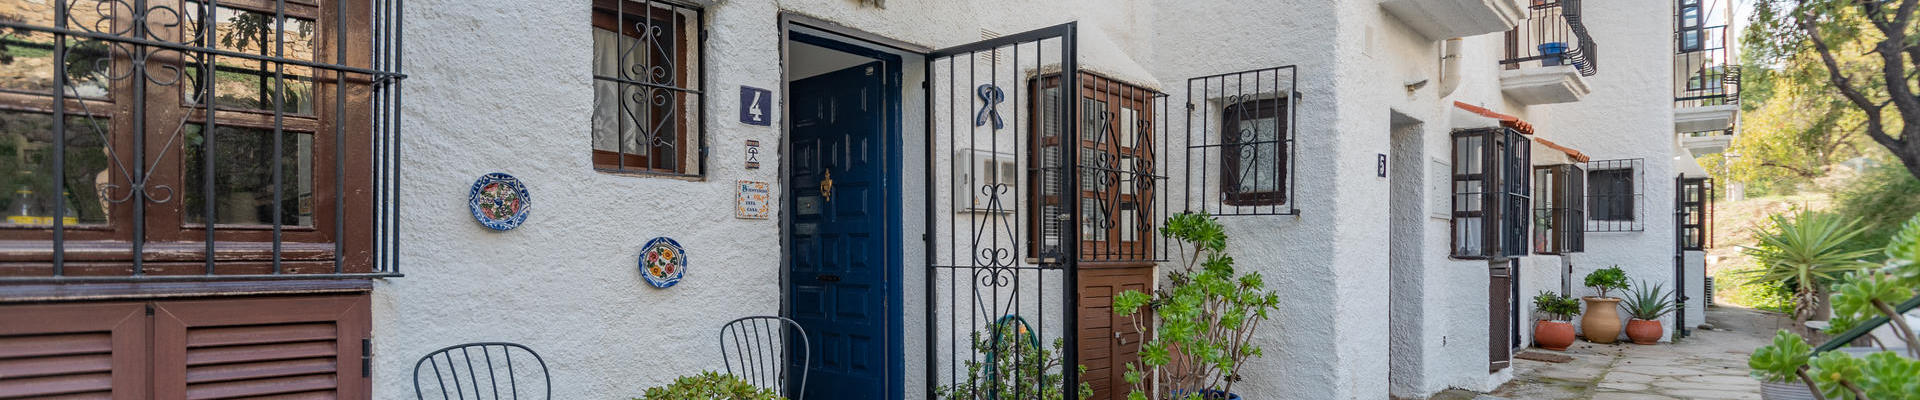 LV749: 2 Bedroom Townhouse for Sale